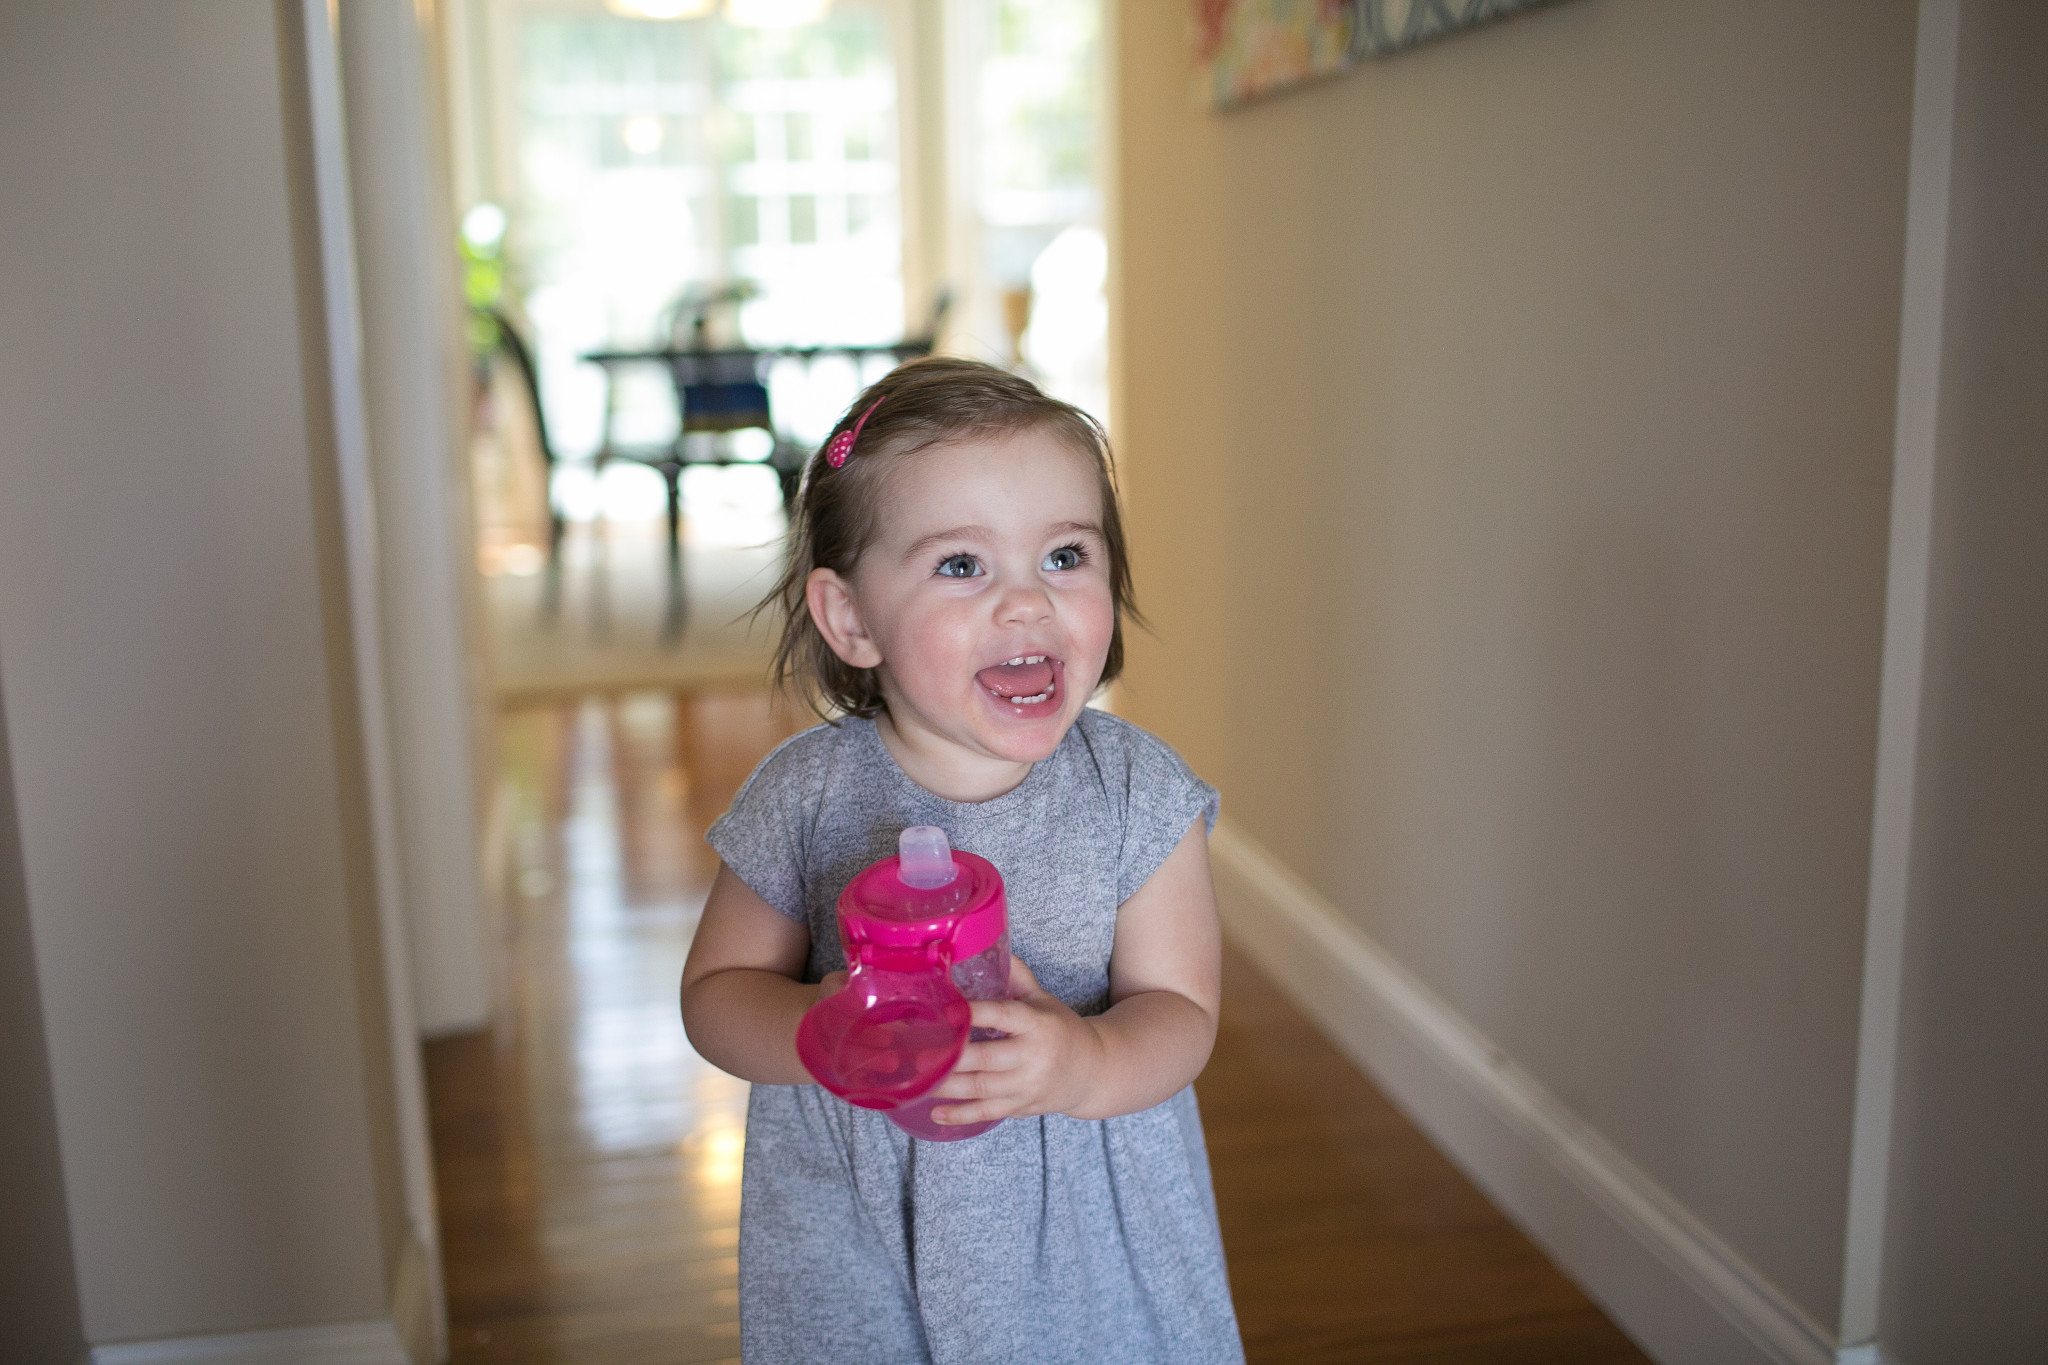 Lifestyle_Soft_Spout_Toddler_Cup_O16A9680